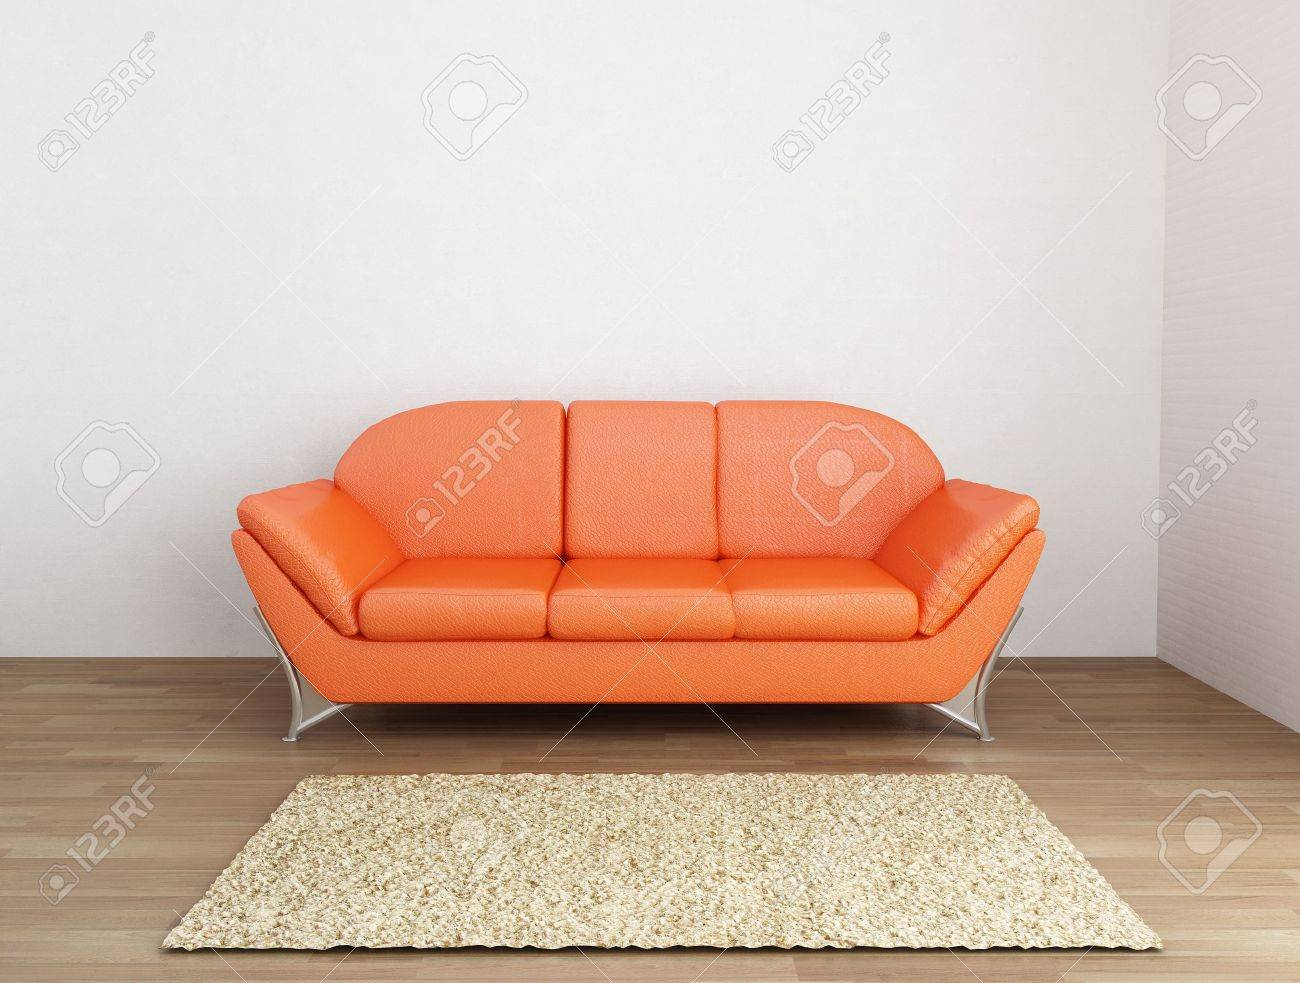 stock sectional unique gallery couch leather photos inspirational orange white of home astonishing sofa interior simple design natuzzi se